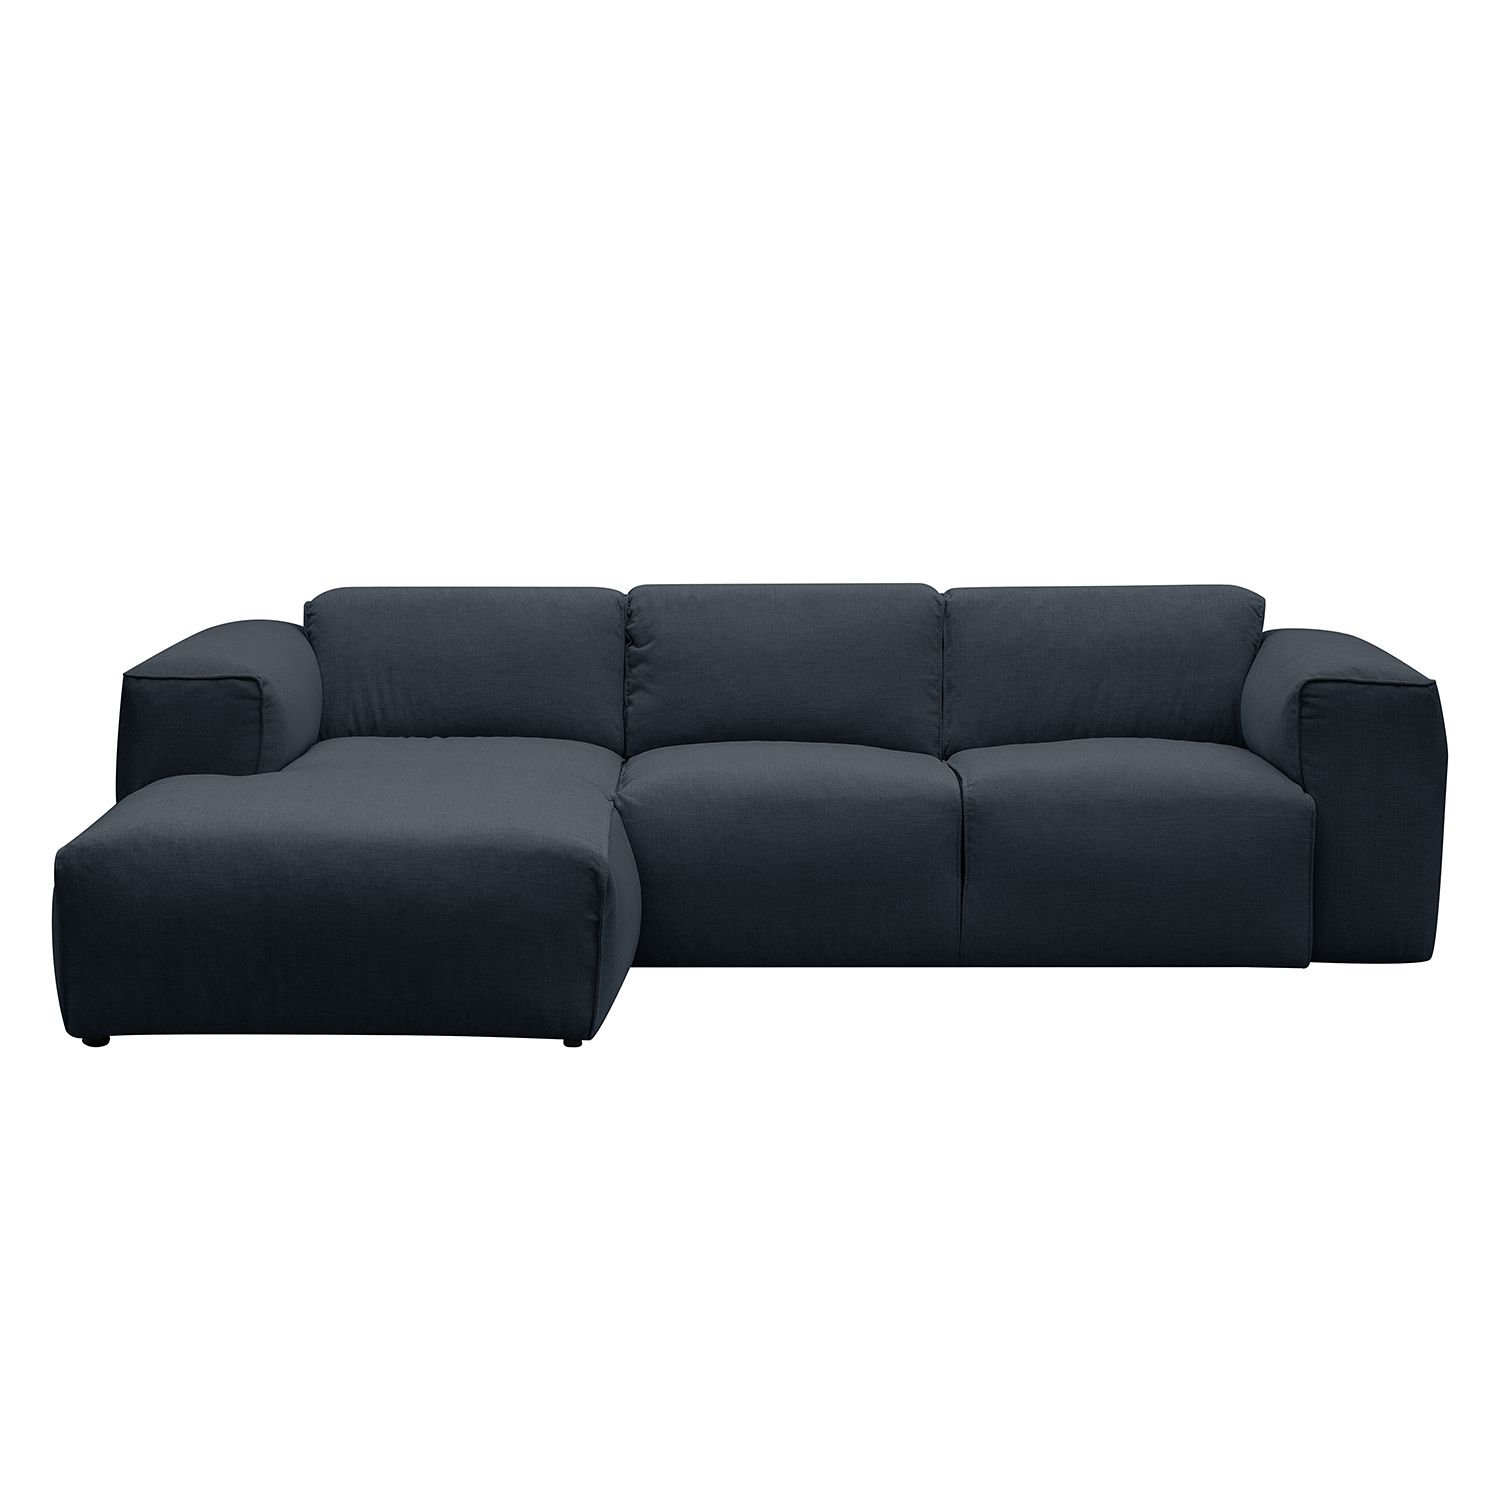 Ecksofa hellgrau  Sofa Hudson II (3-Sitzer) Echtleder - Fashion For Home